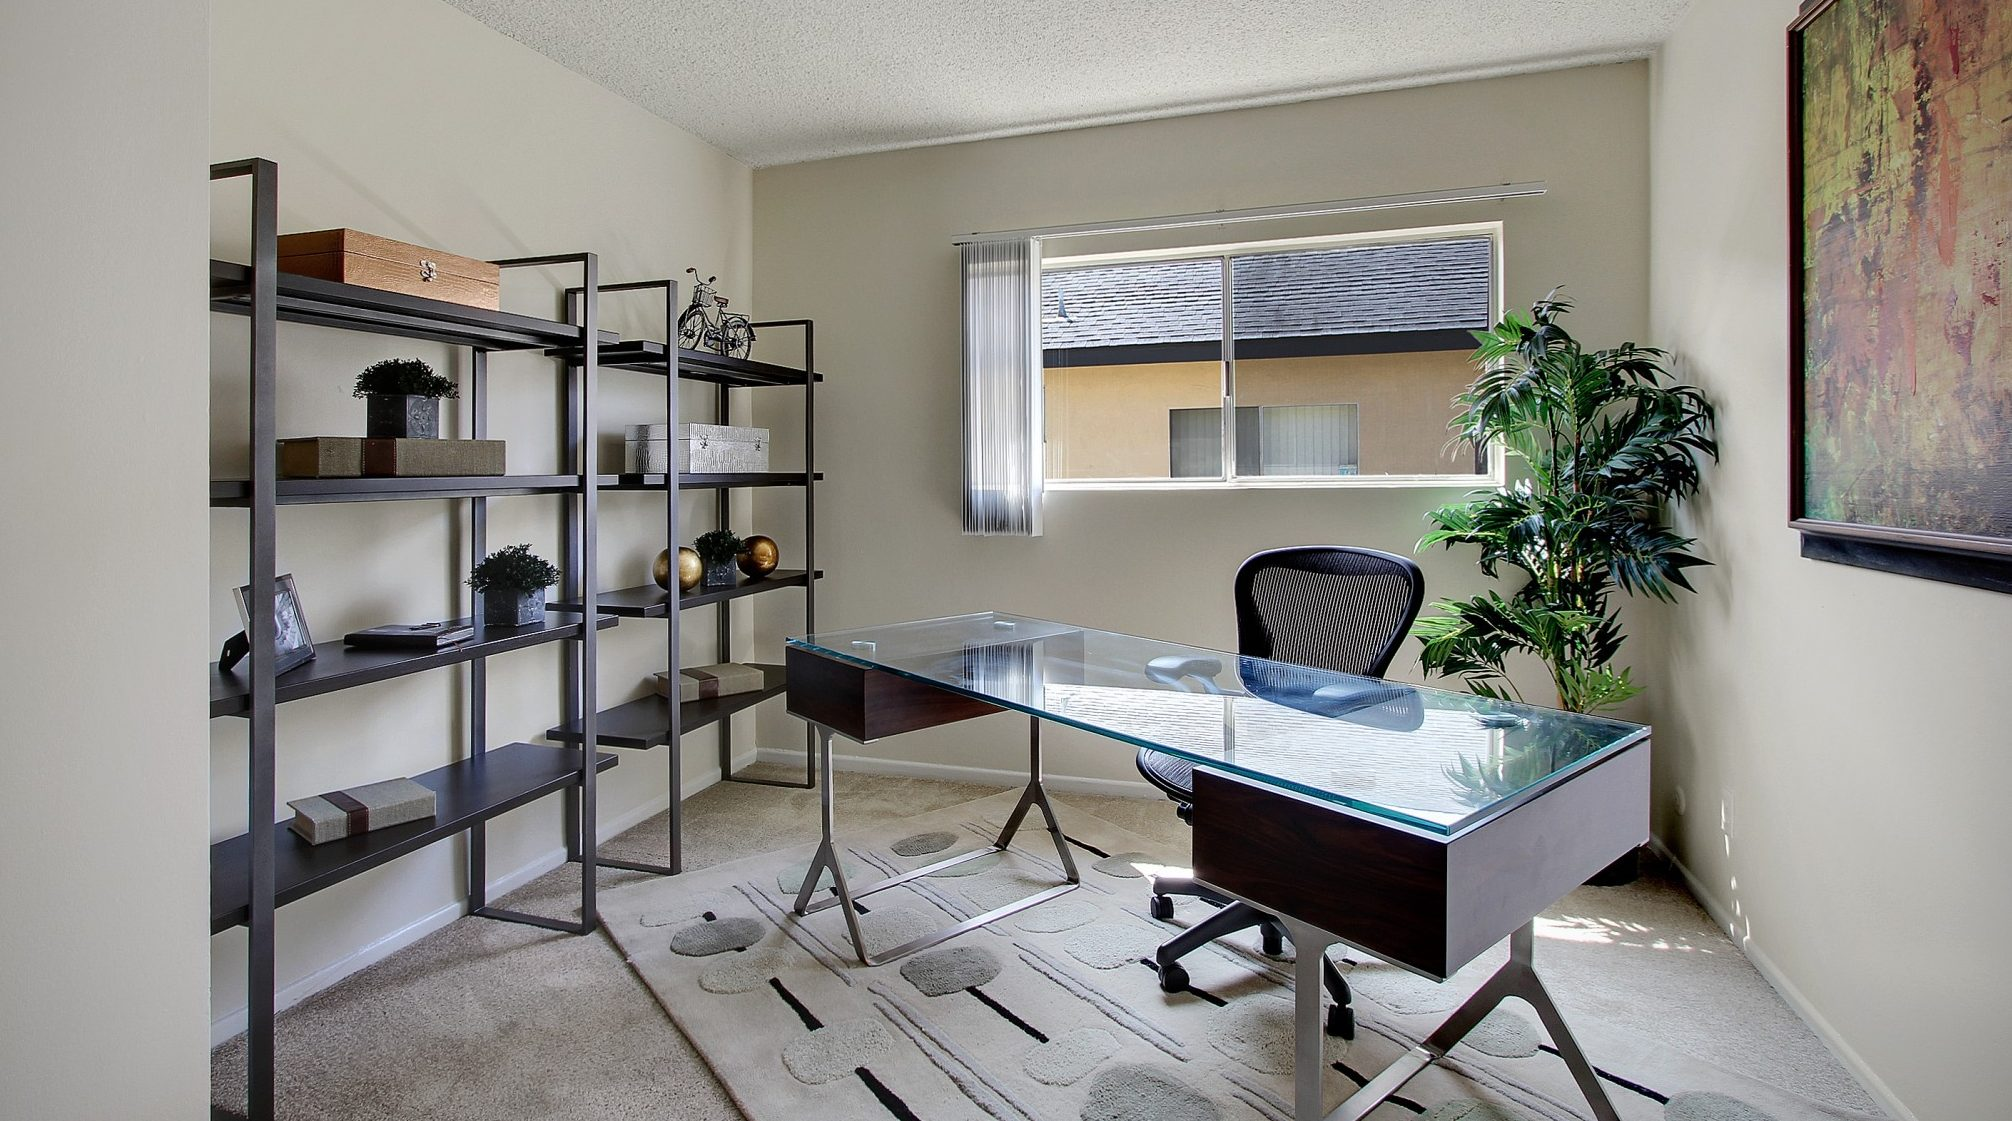 Interior of a room set up as an office.